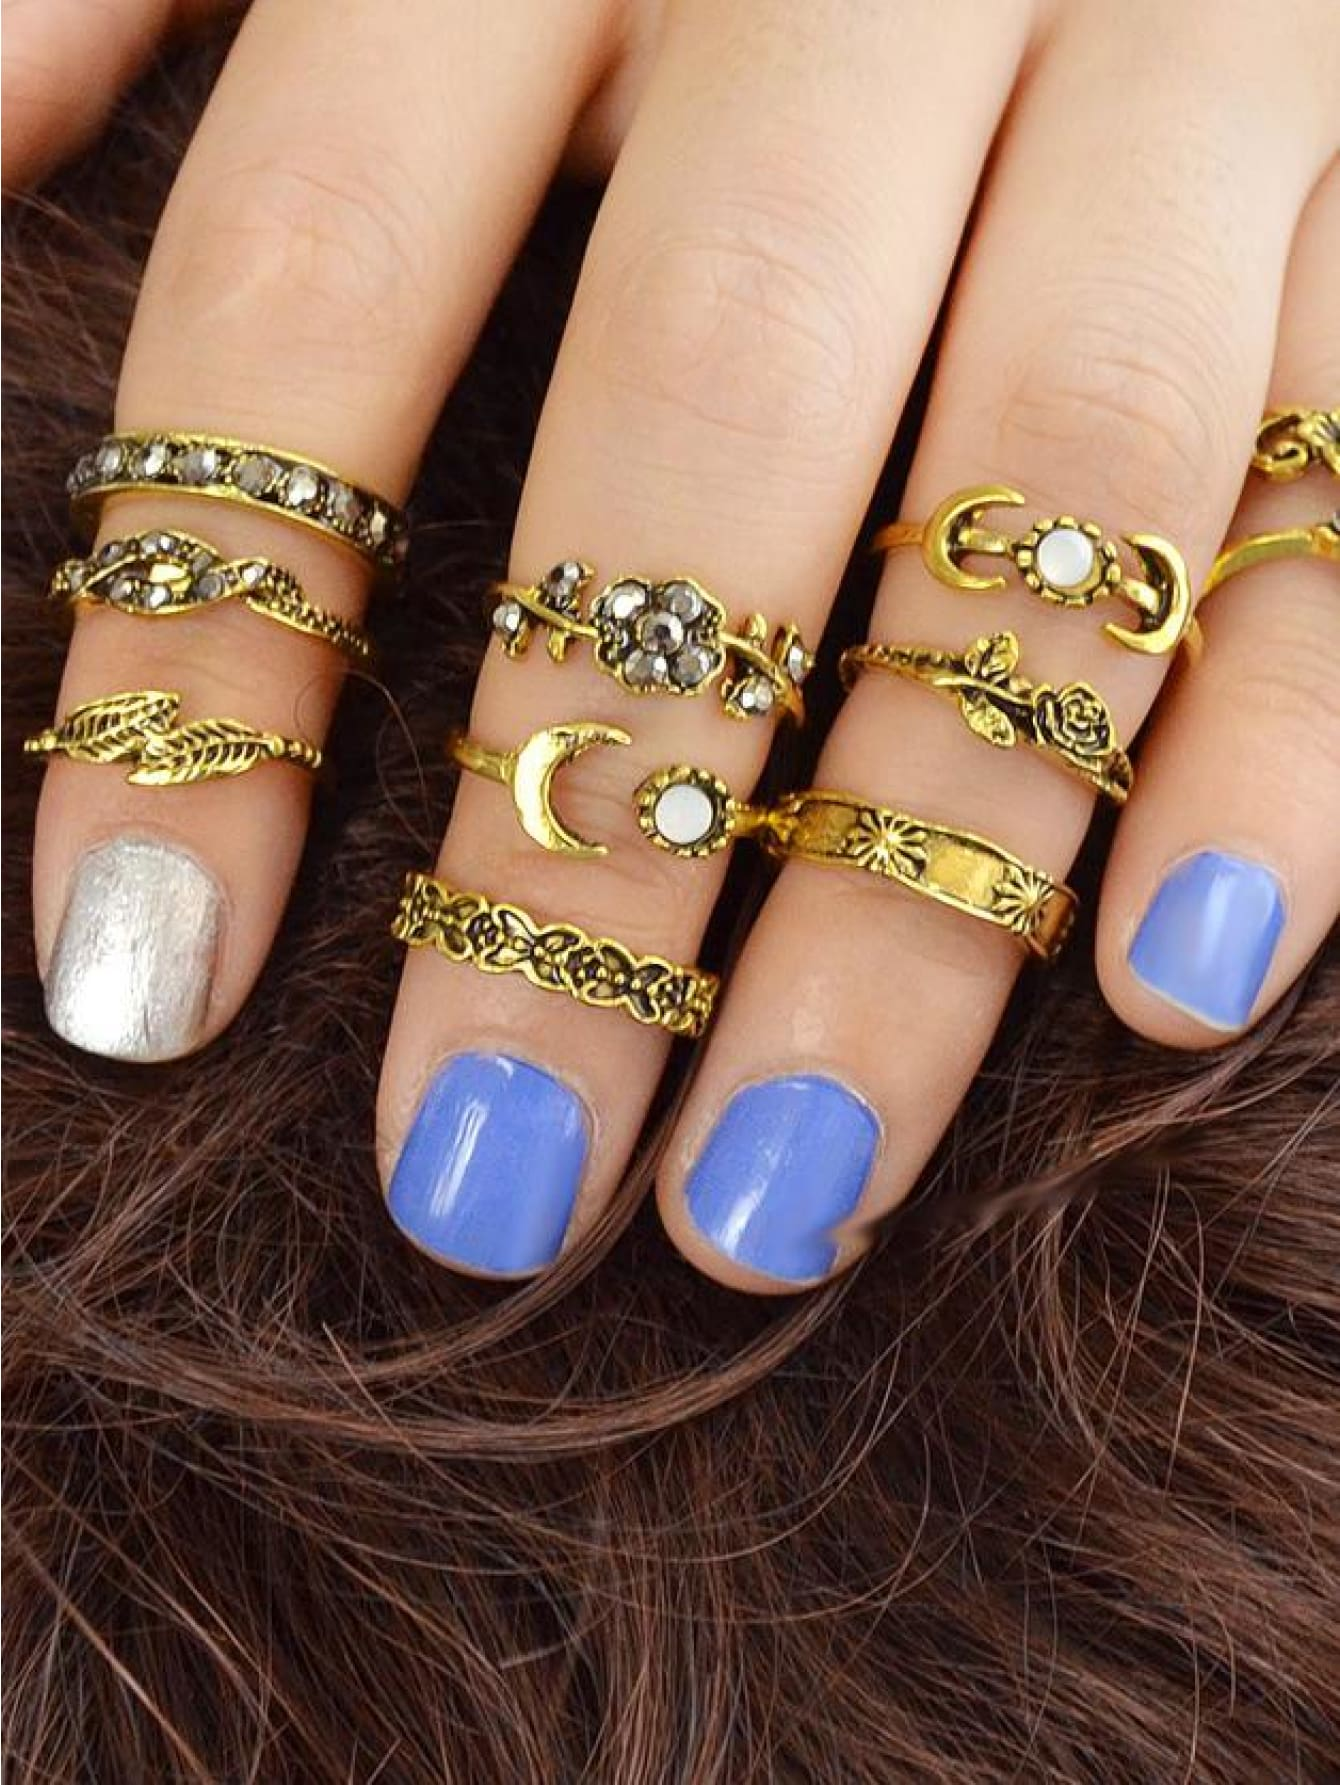 At-Gold 11Pcs/set Moon Flower Leaf Jewelry Rings - Rings